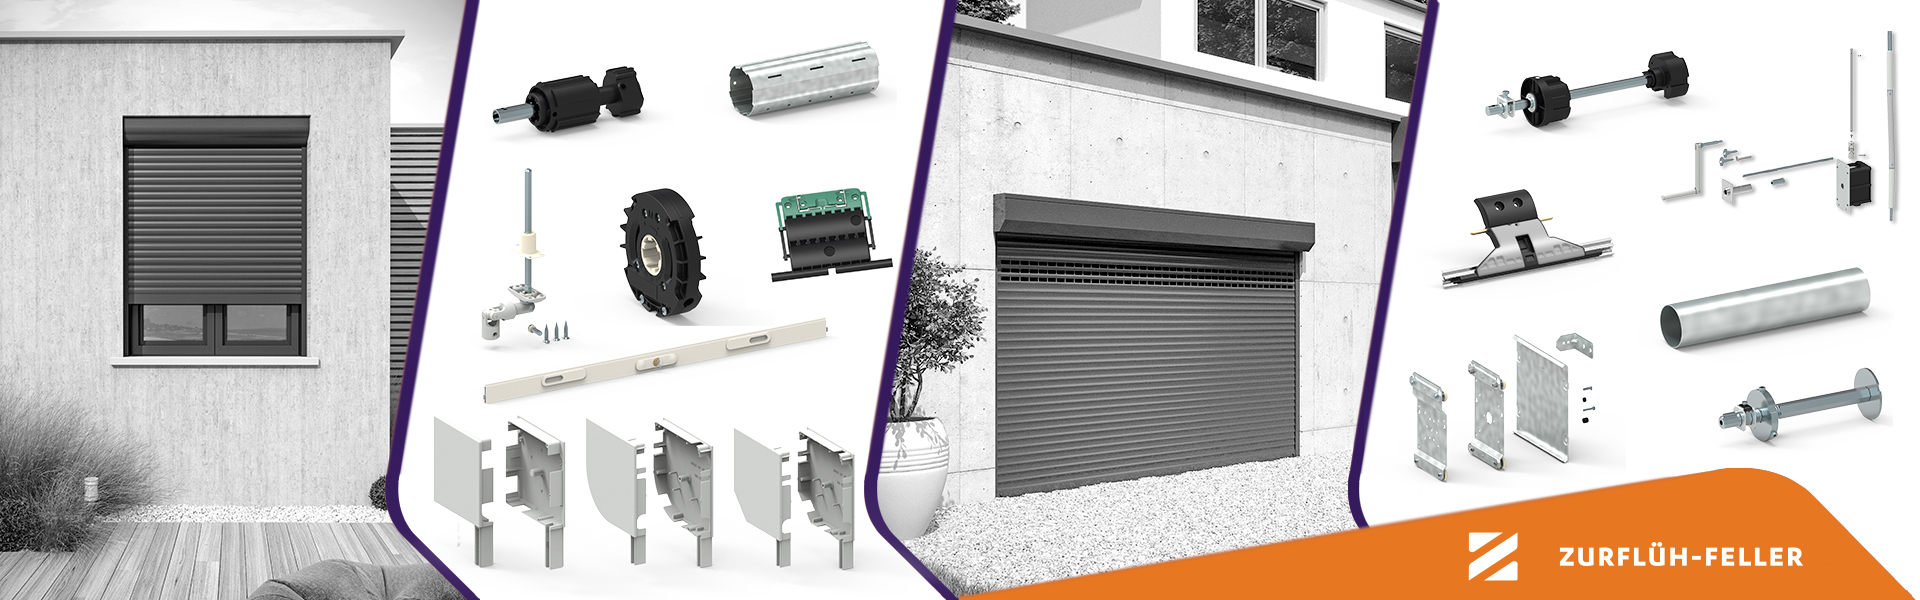 French leader for system designing and manufacturing of components for roller shutter